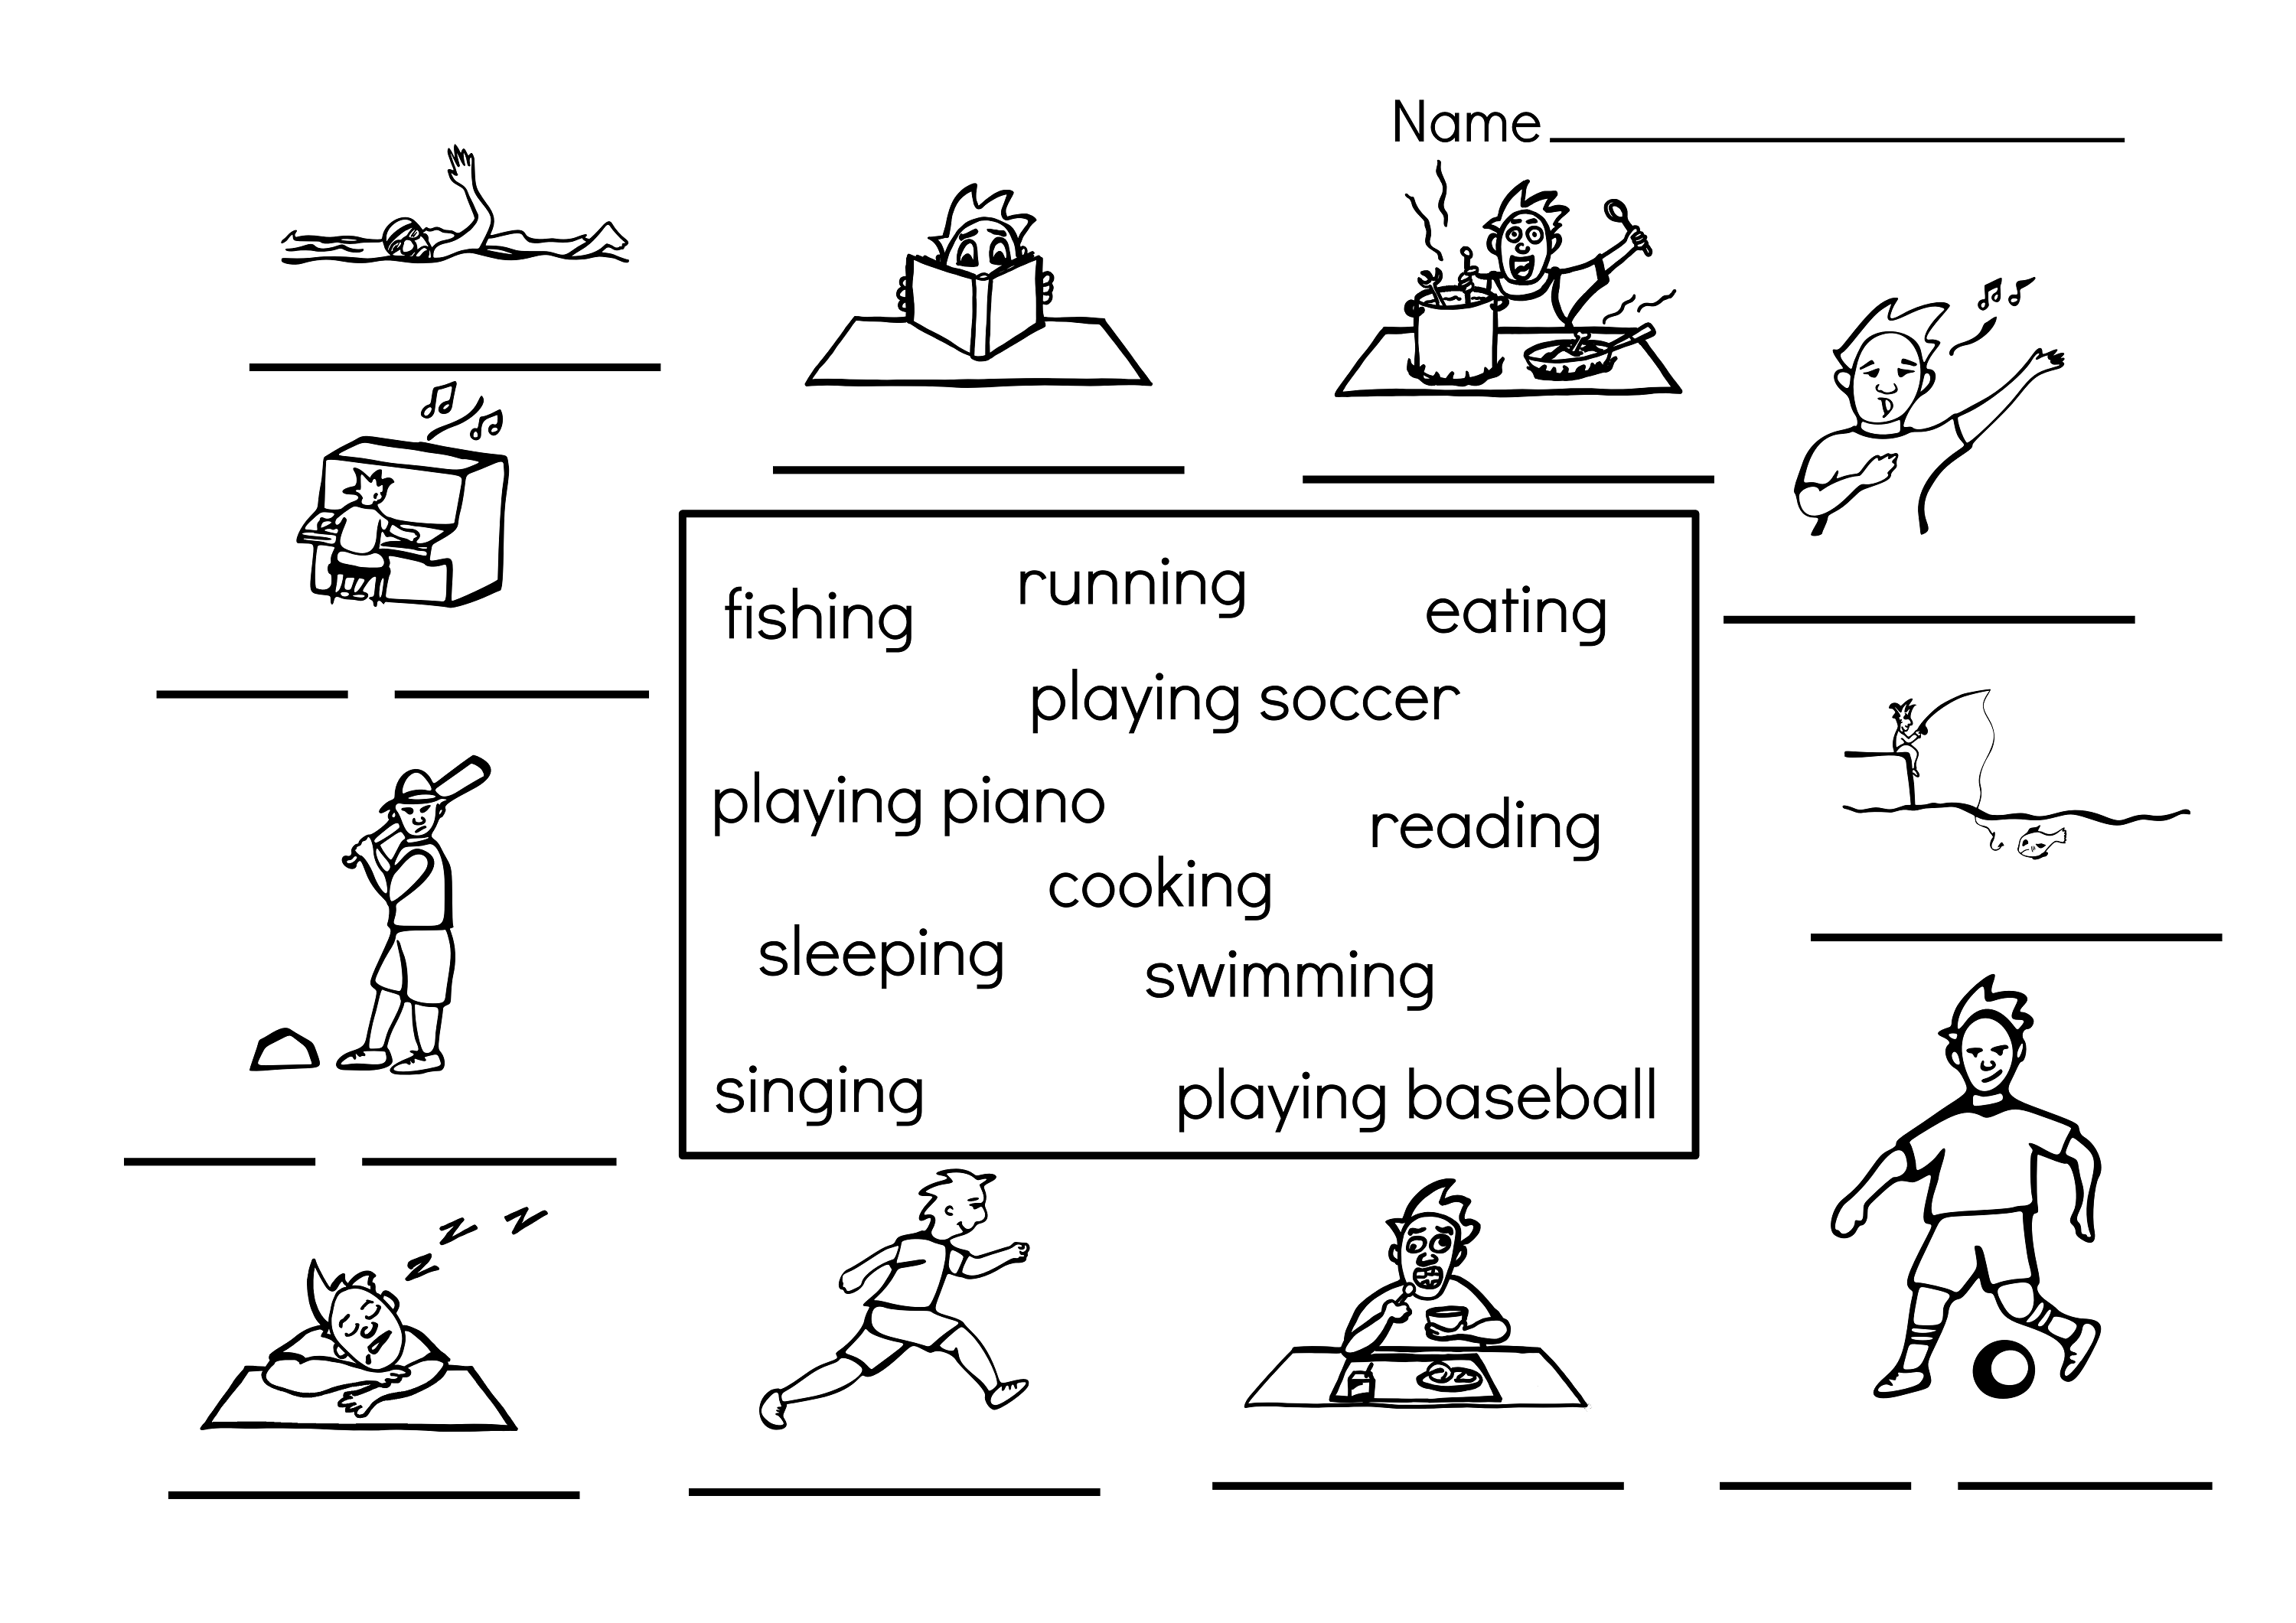 worksheet Sports Worksheets for the kids who love sport we have collected some sports worksheets kids